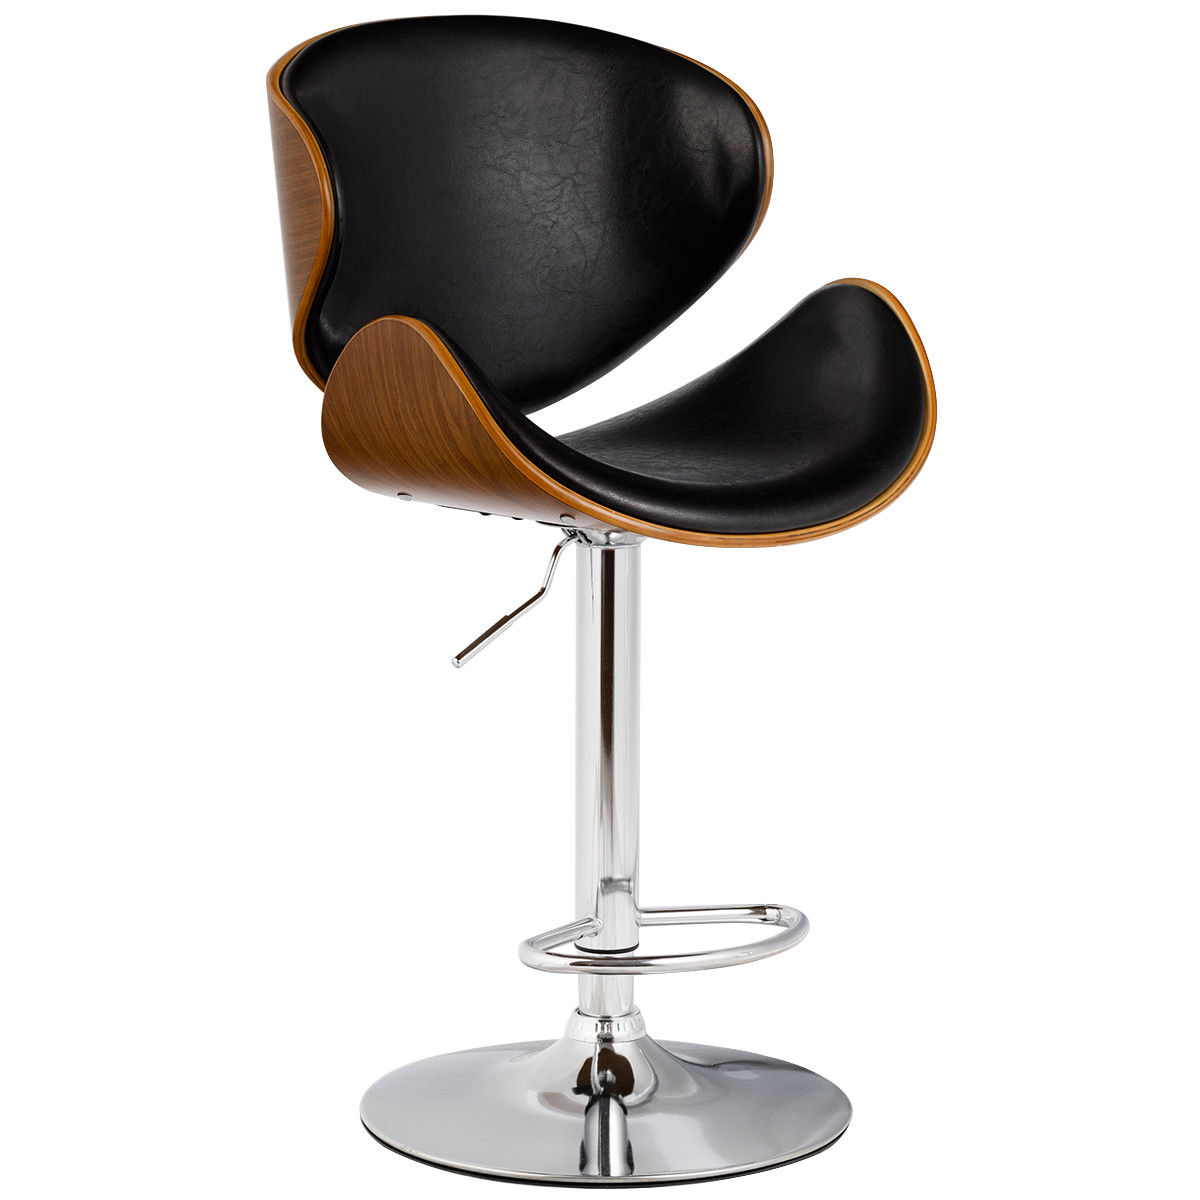 Costway 1PC Adjustable Swivel Bentwood Bar Stool PU Leather Modern Bar Stool Pub Chair by Costway